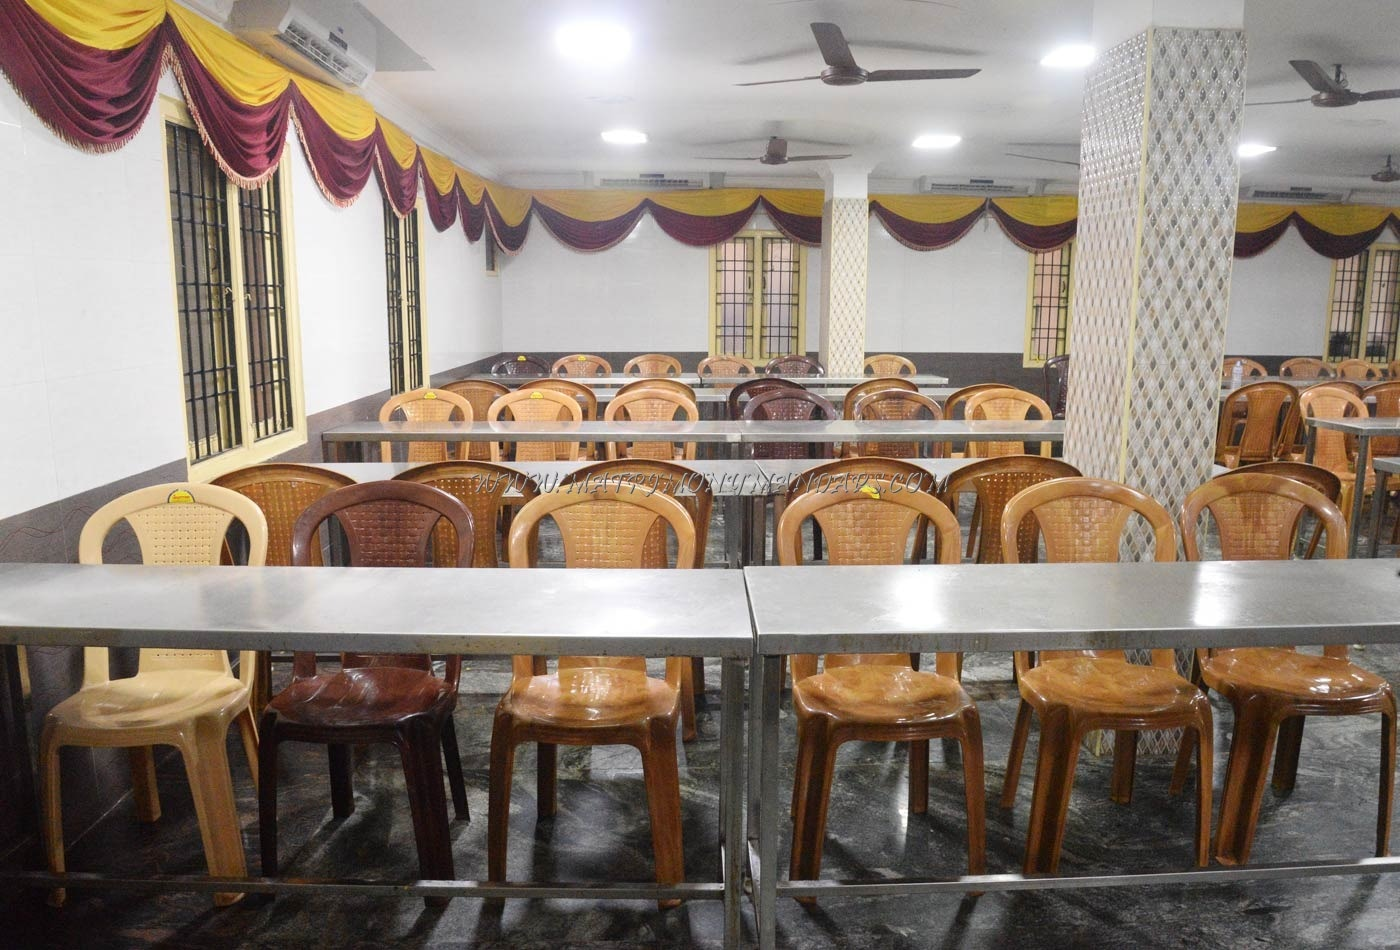 Find the availability of the Shri Sivasakthi Mahal (A/C) in Porur, Chennai and avail special offers